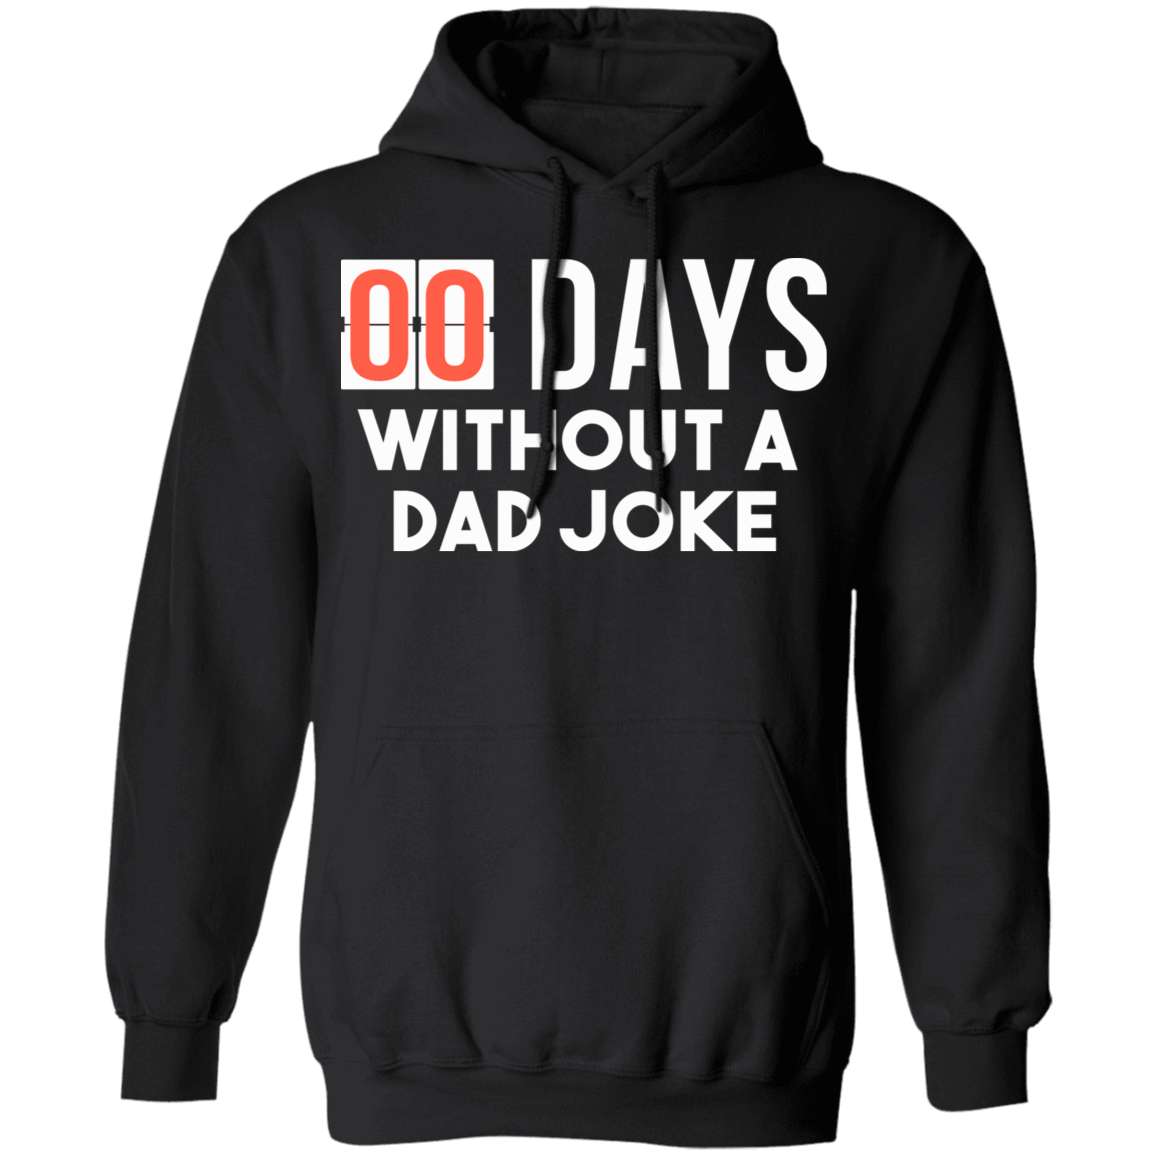 00 Days Without A Dad Joke T-Shirts, Hoodies, Tank 541-4740-79929315-23087 - Tee Ript